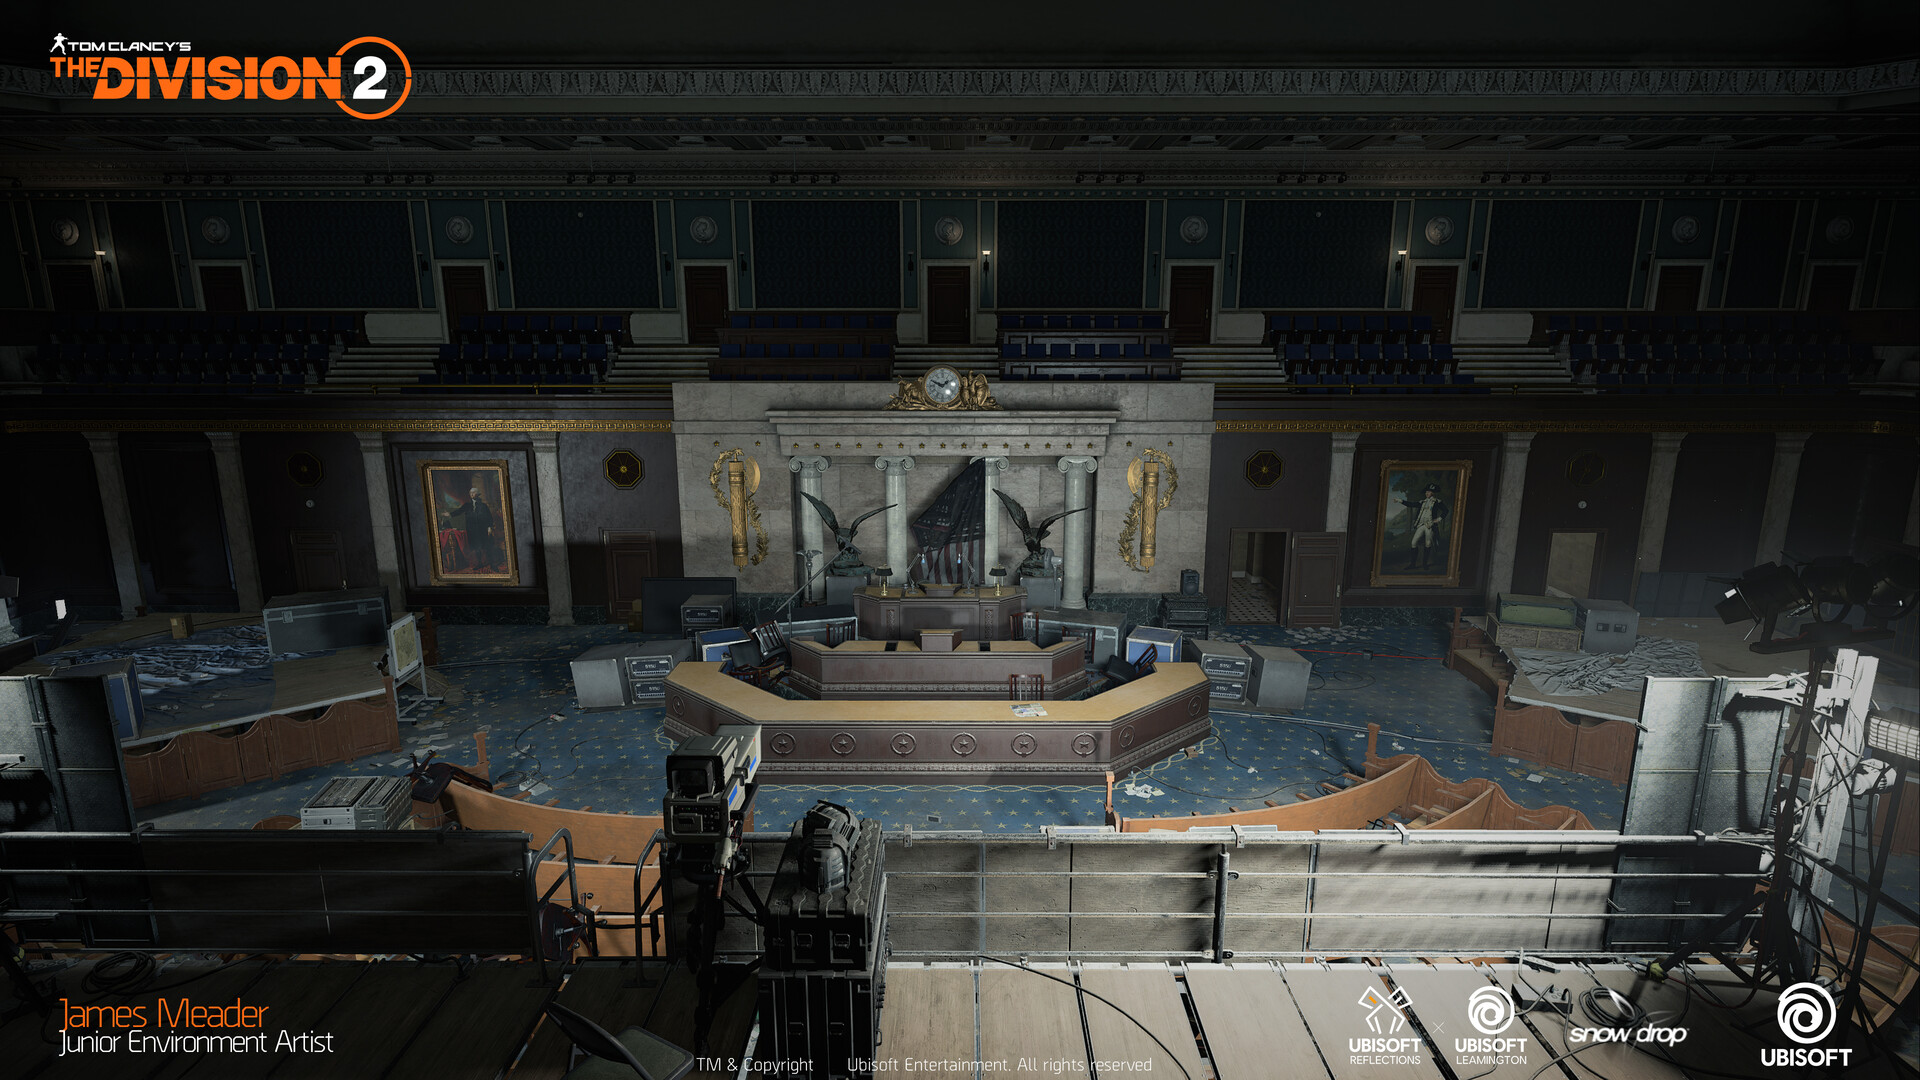 The House of Representatives inside the US Capitol and the final mission of the game. I handle the interior architecture from blockout to final